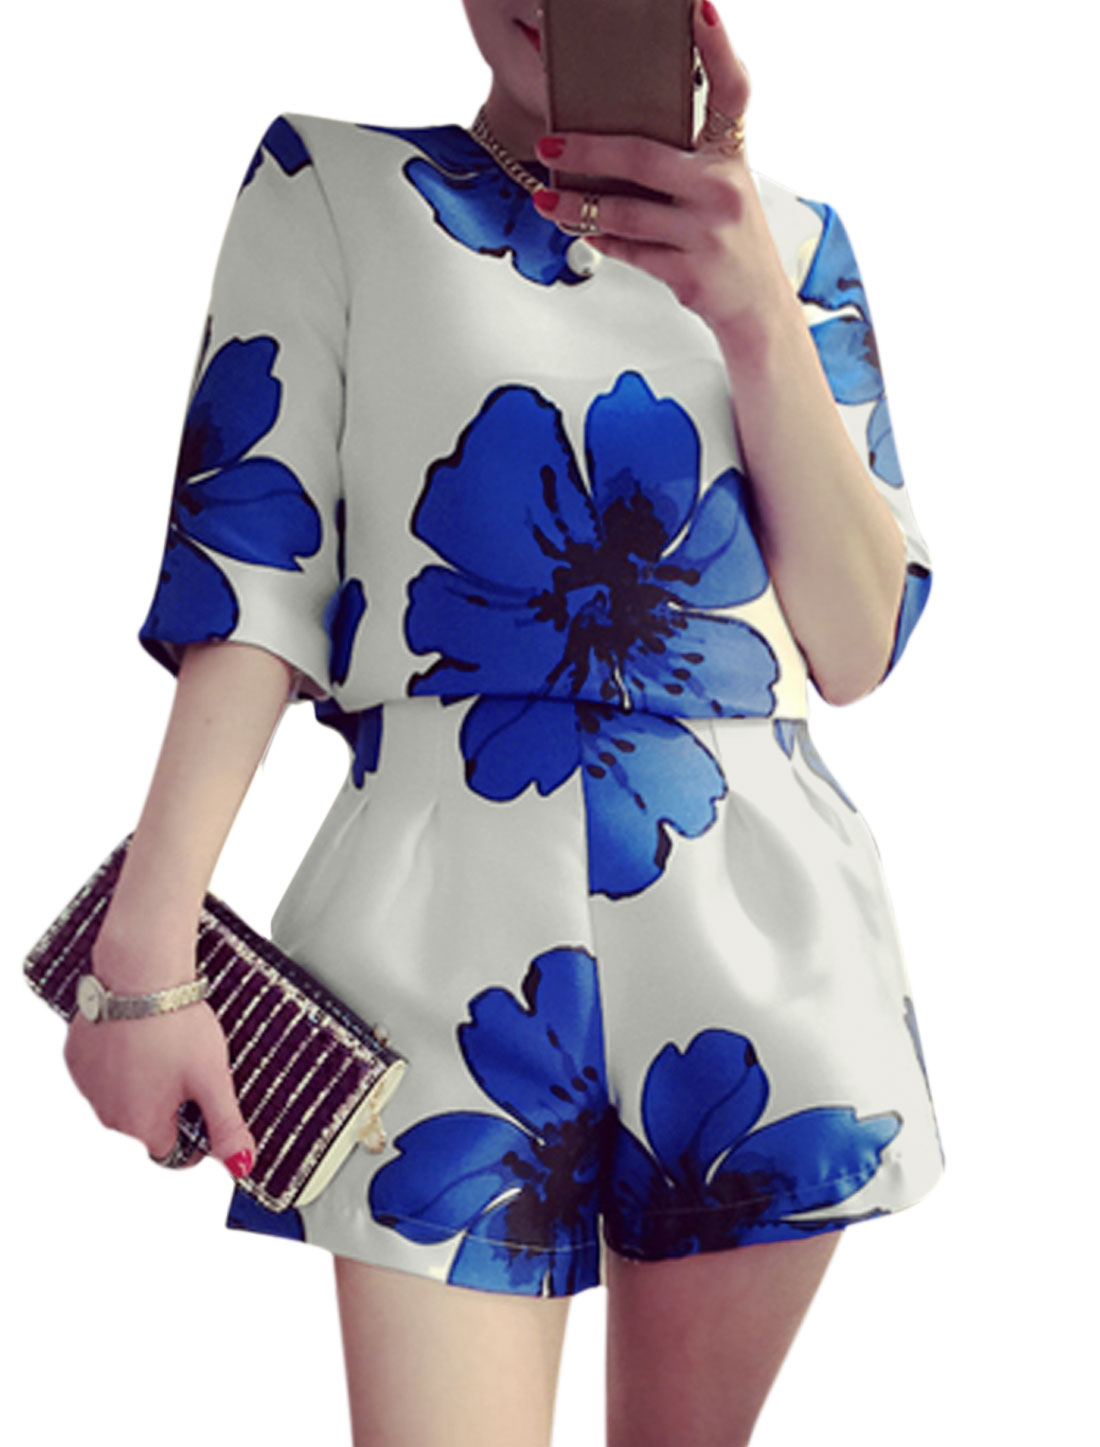 Woman Floral Prints Elbow Sleeves Top w High Waist Shorts White XS